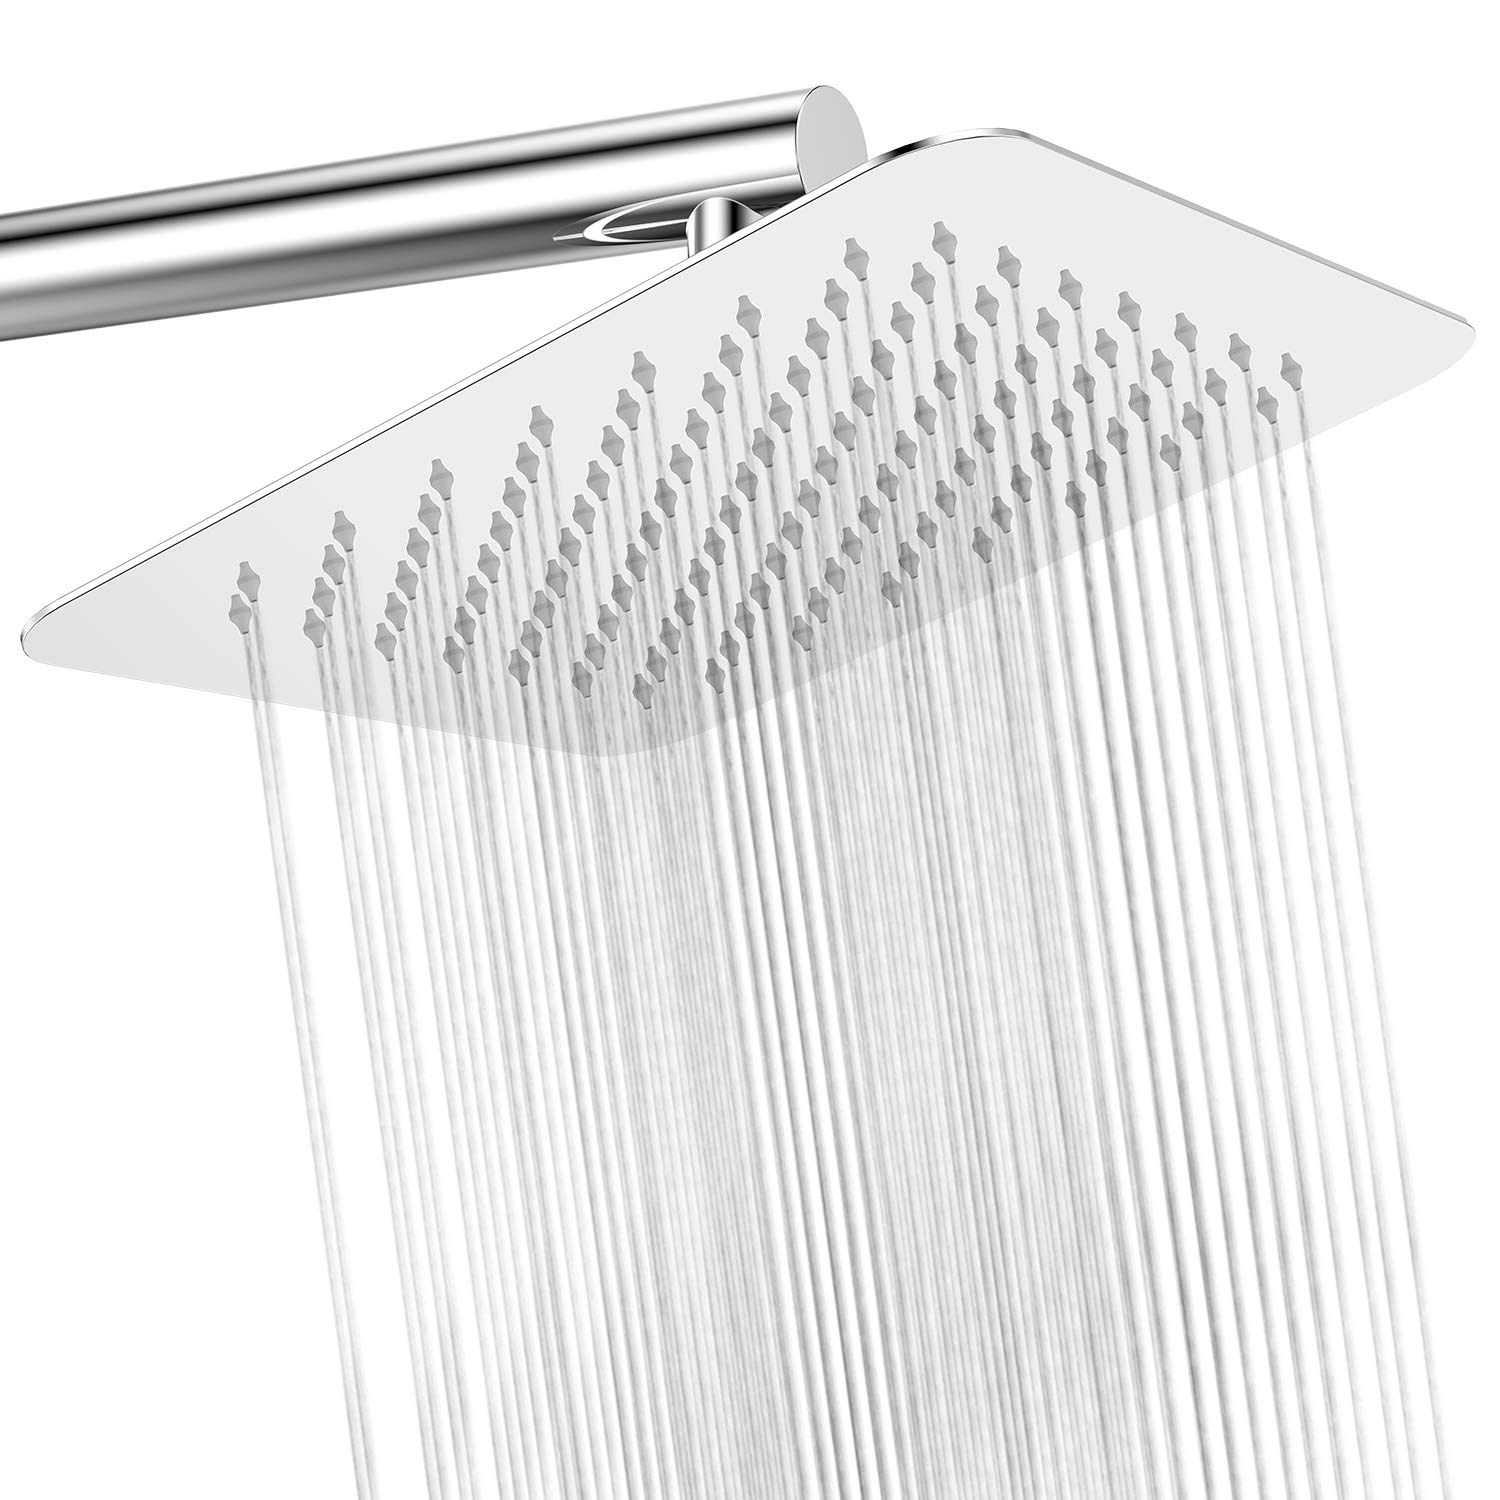 Rainfall Shower System 10 Inch High Pressure Square Shower Head,Chrome,Easy Tool Free Installation